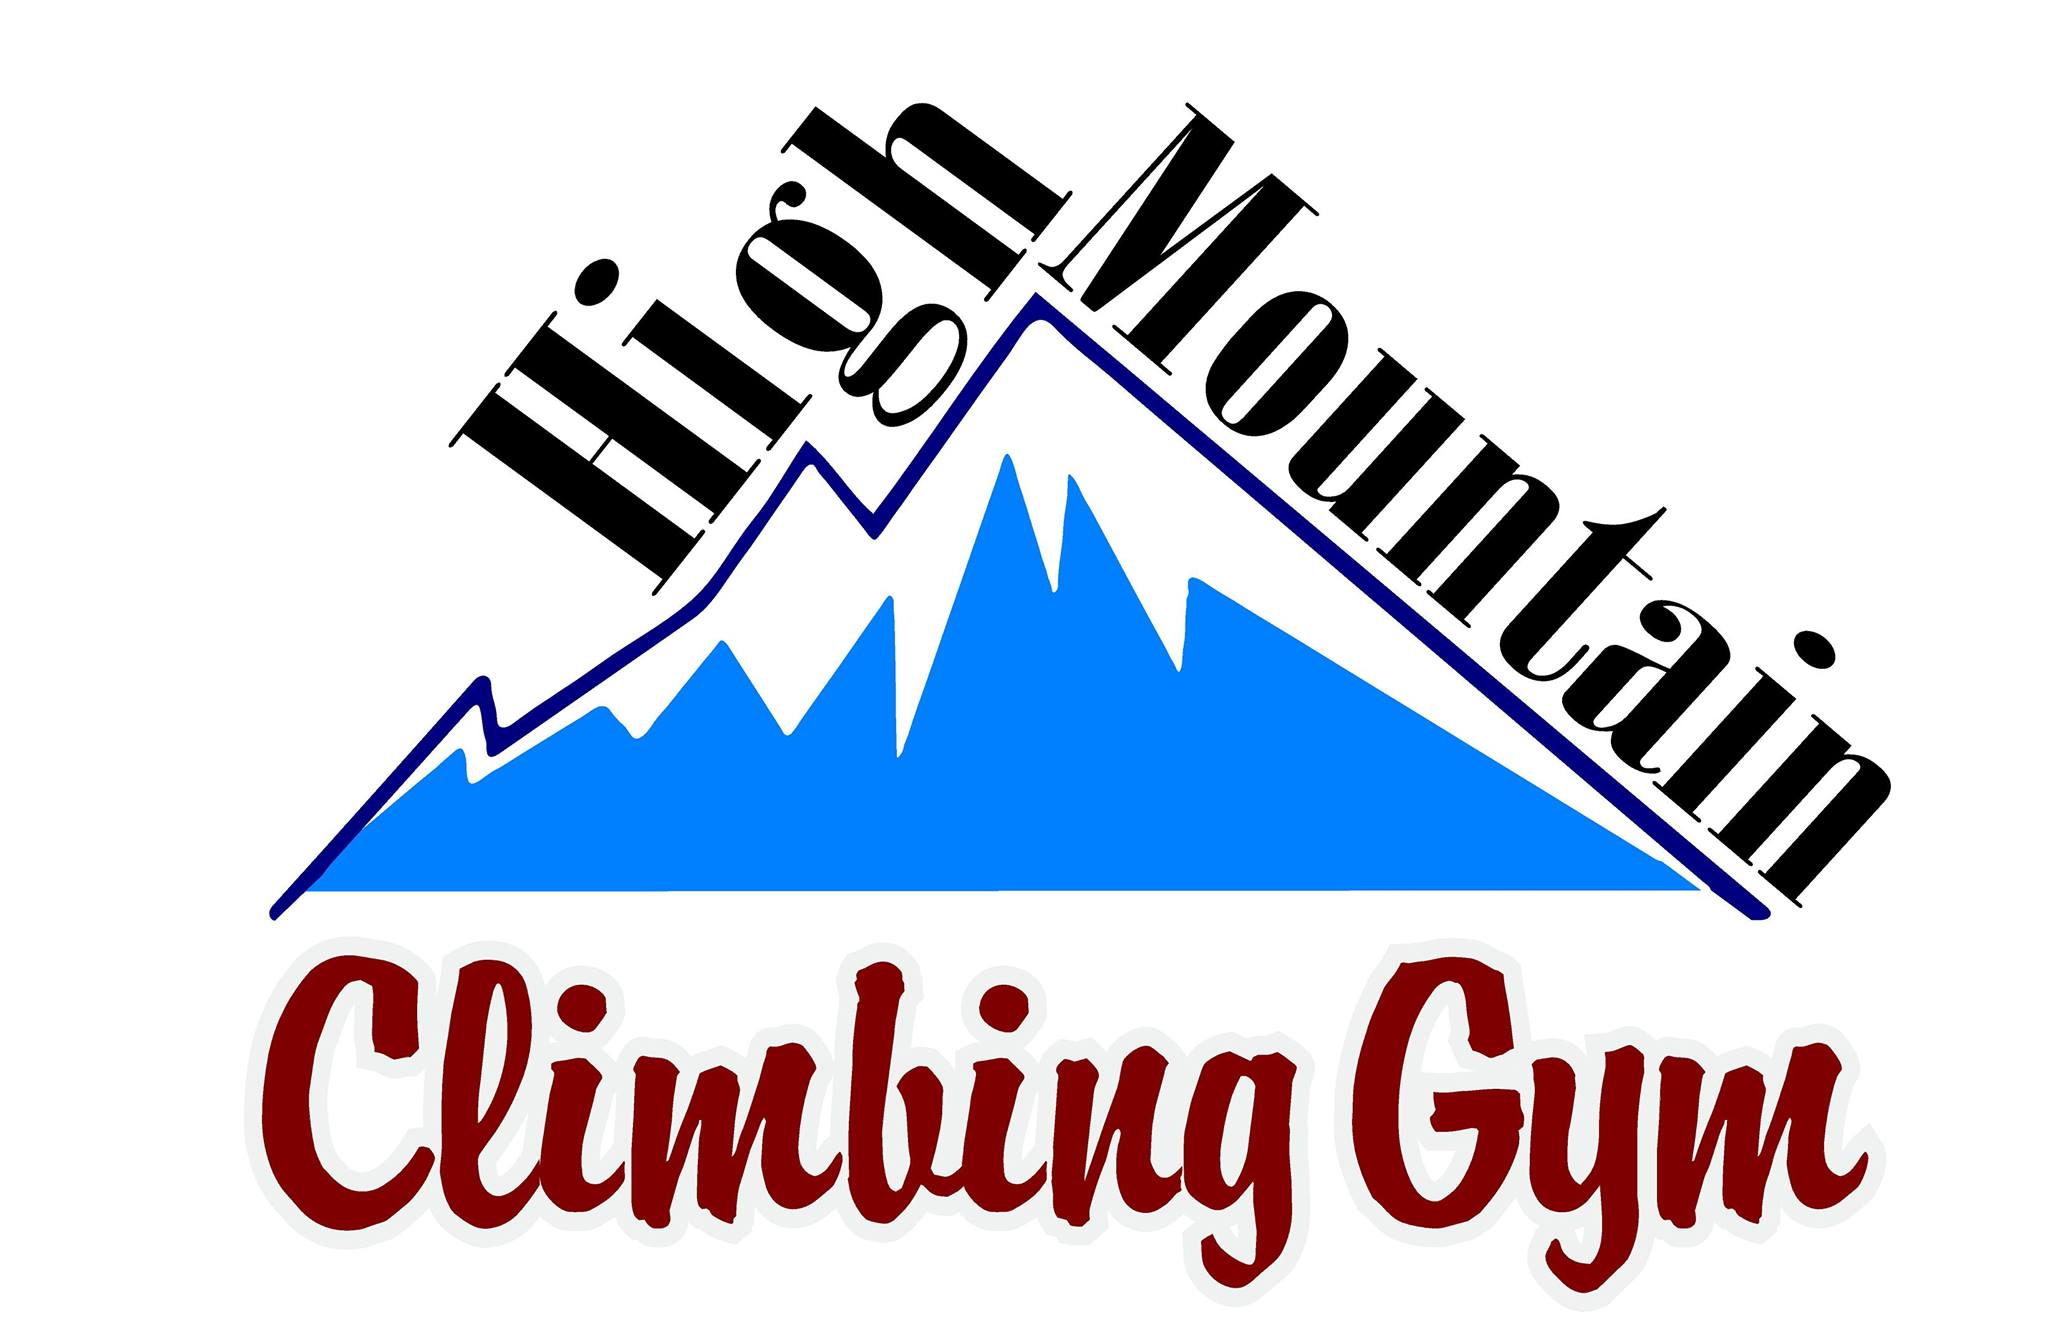 High Mountain Climbing Gym